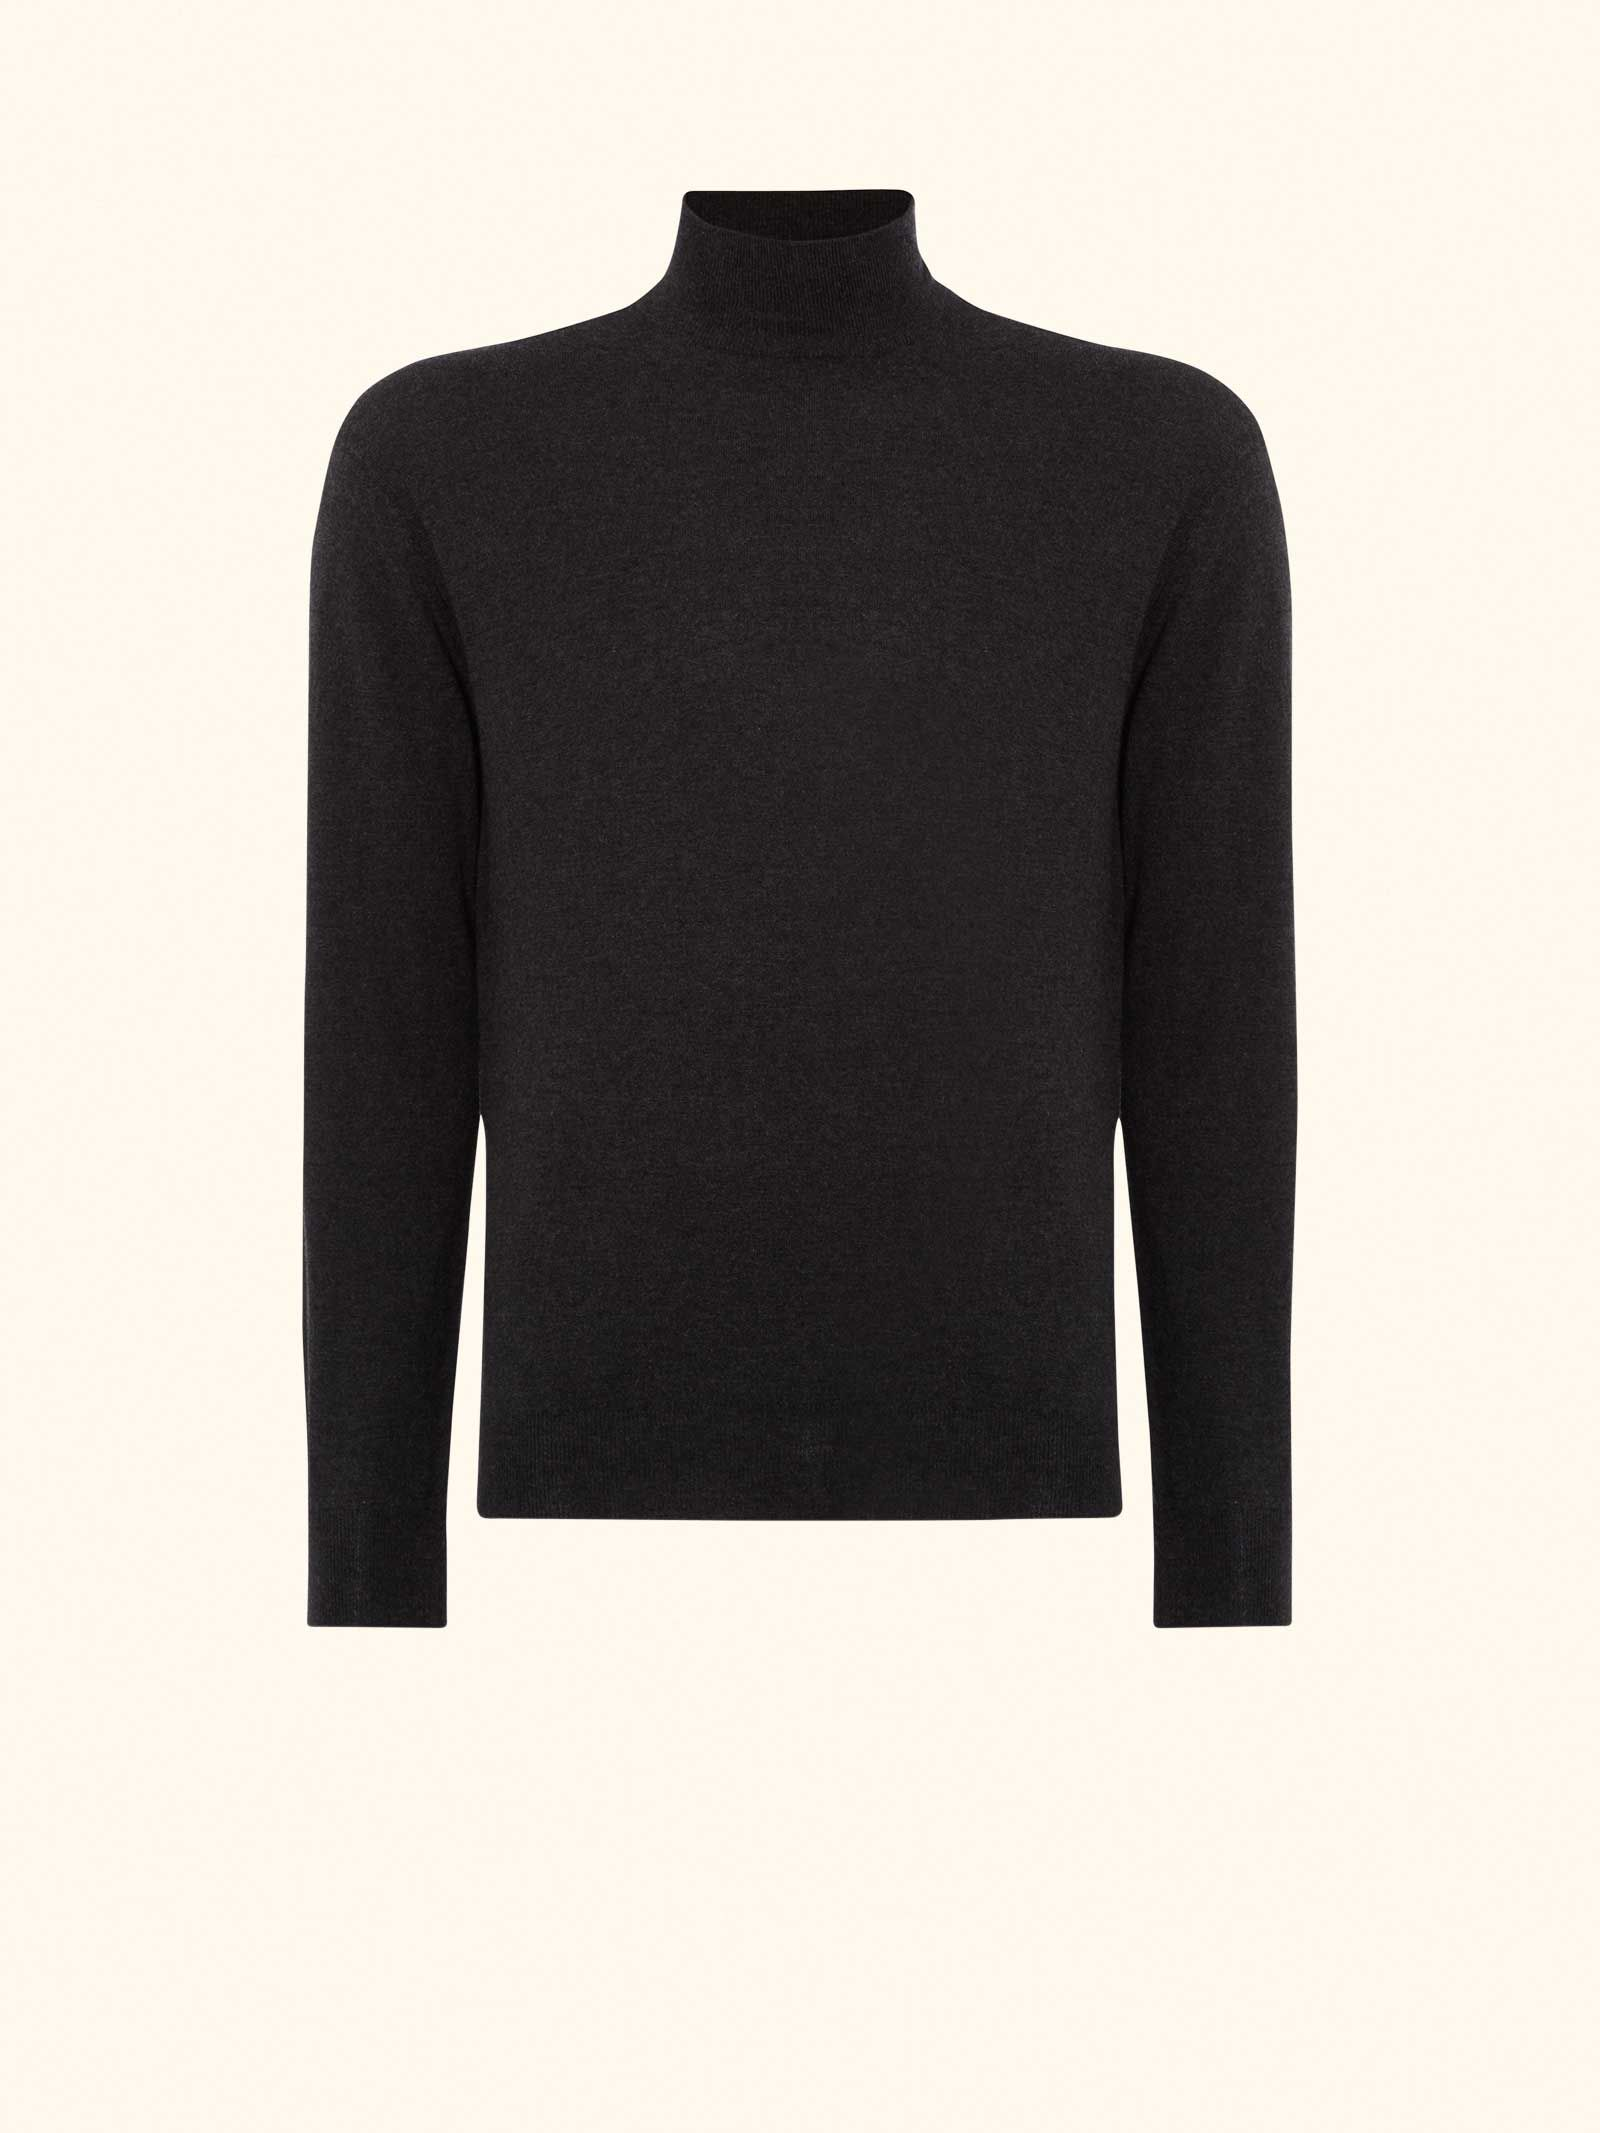 860e7eb17d1e85 Mock Turtle Neck (as seen in the SPECTRE poster) in Dark Charcoal Grey -  N.PEAL Luxury Cashmere